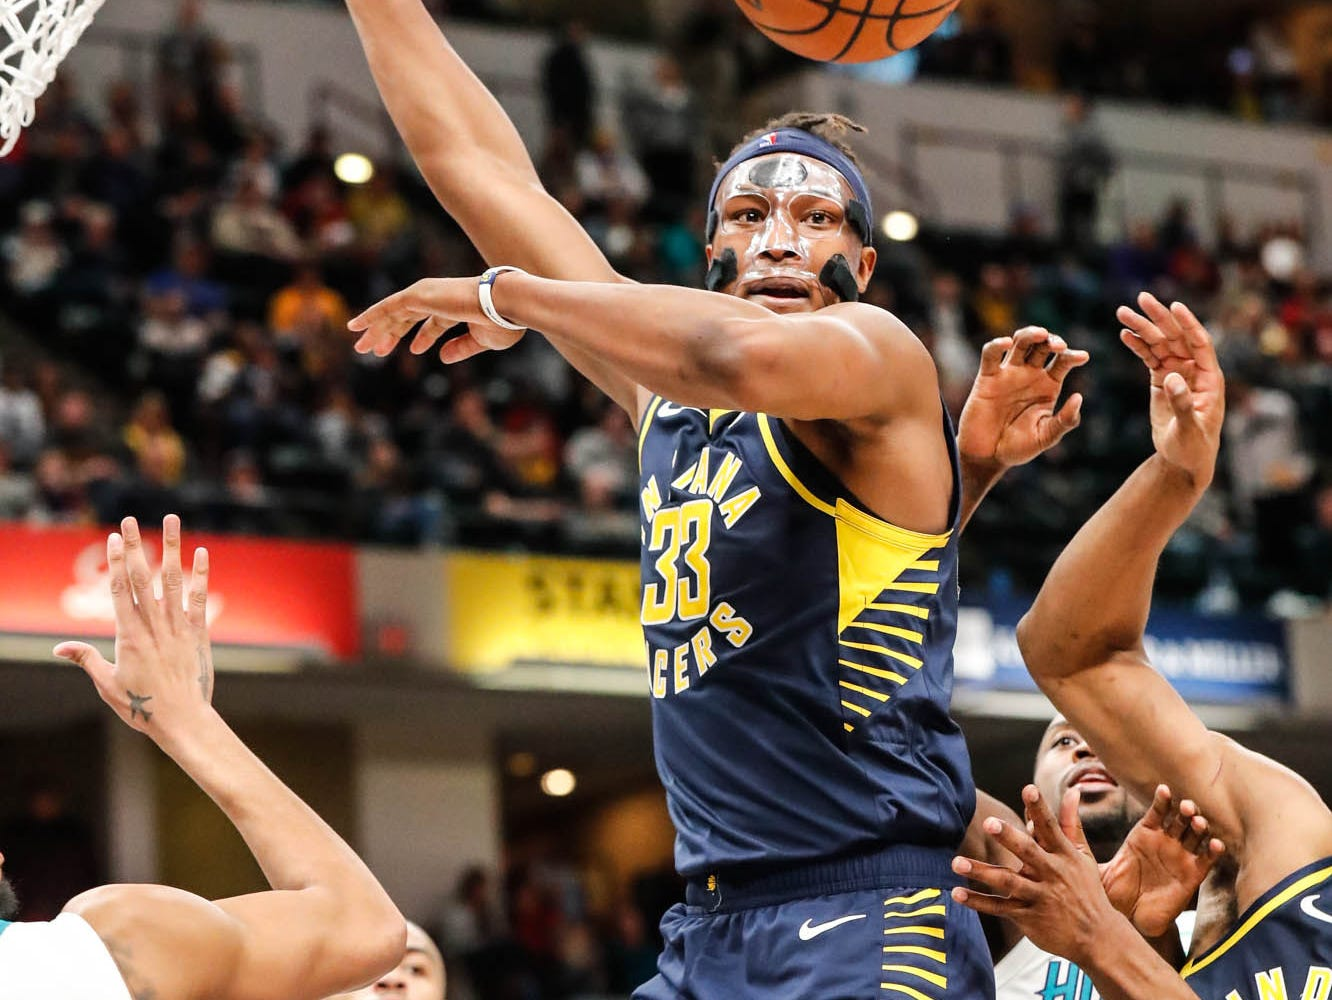 Indiana Pacers center Myles Turner (33), grabs for a rebound during a game between the Pacers and Hornets at Bankers Life Fieldhouse on Sunday, Jan. 20, 2019.